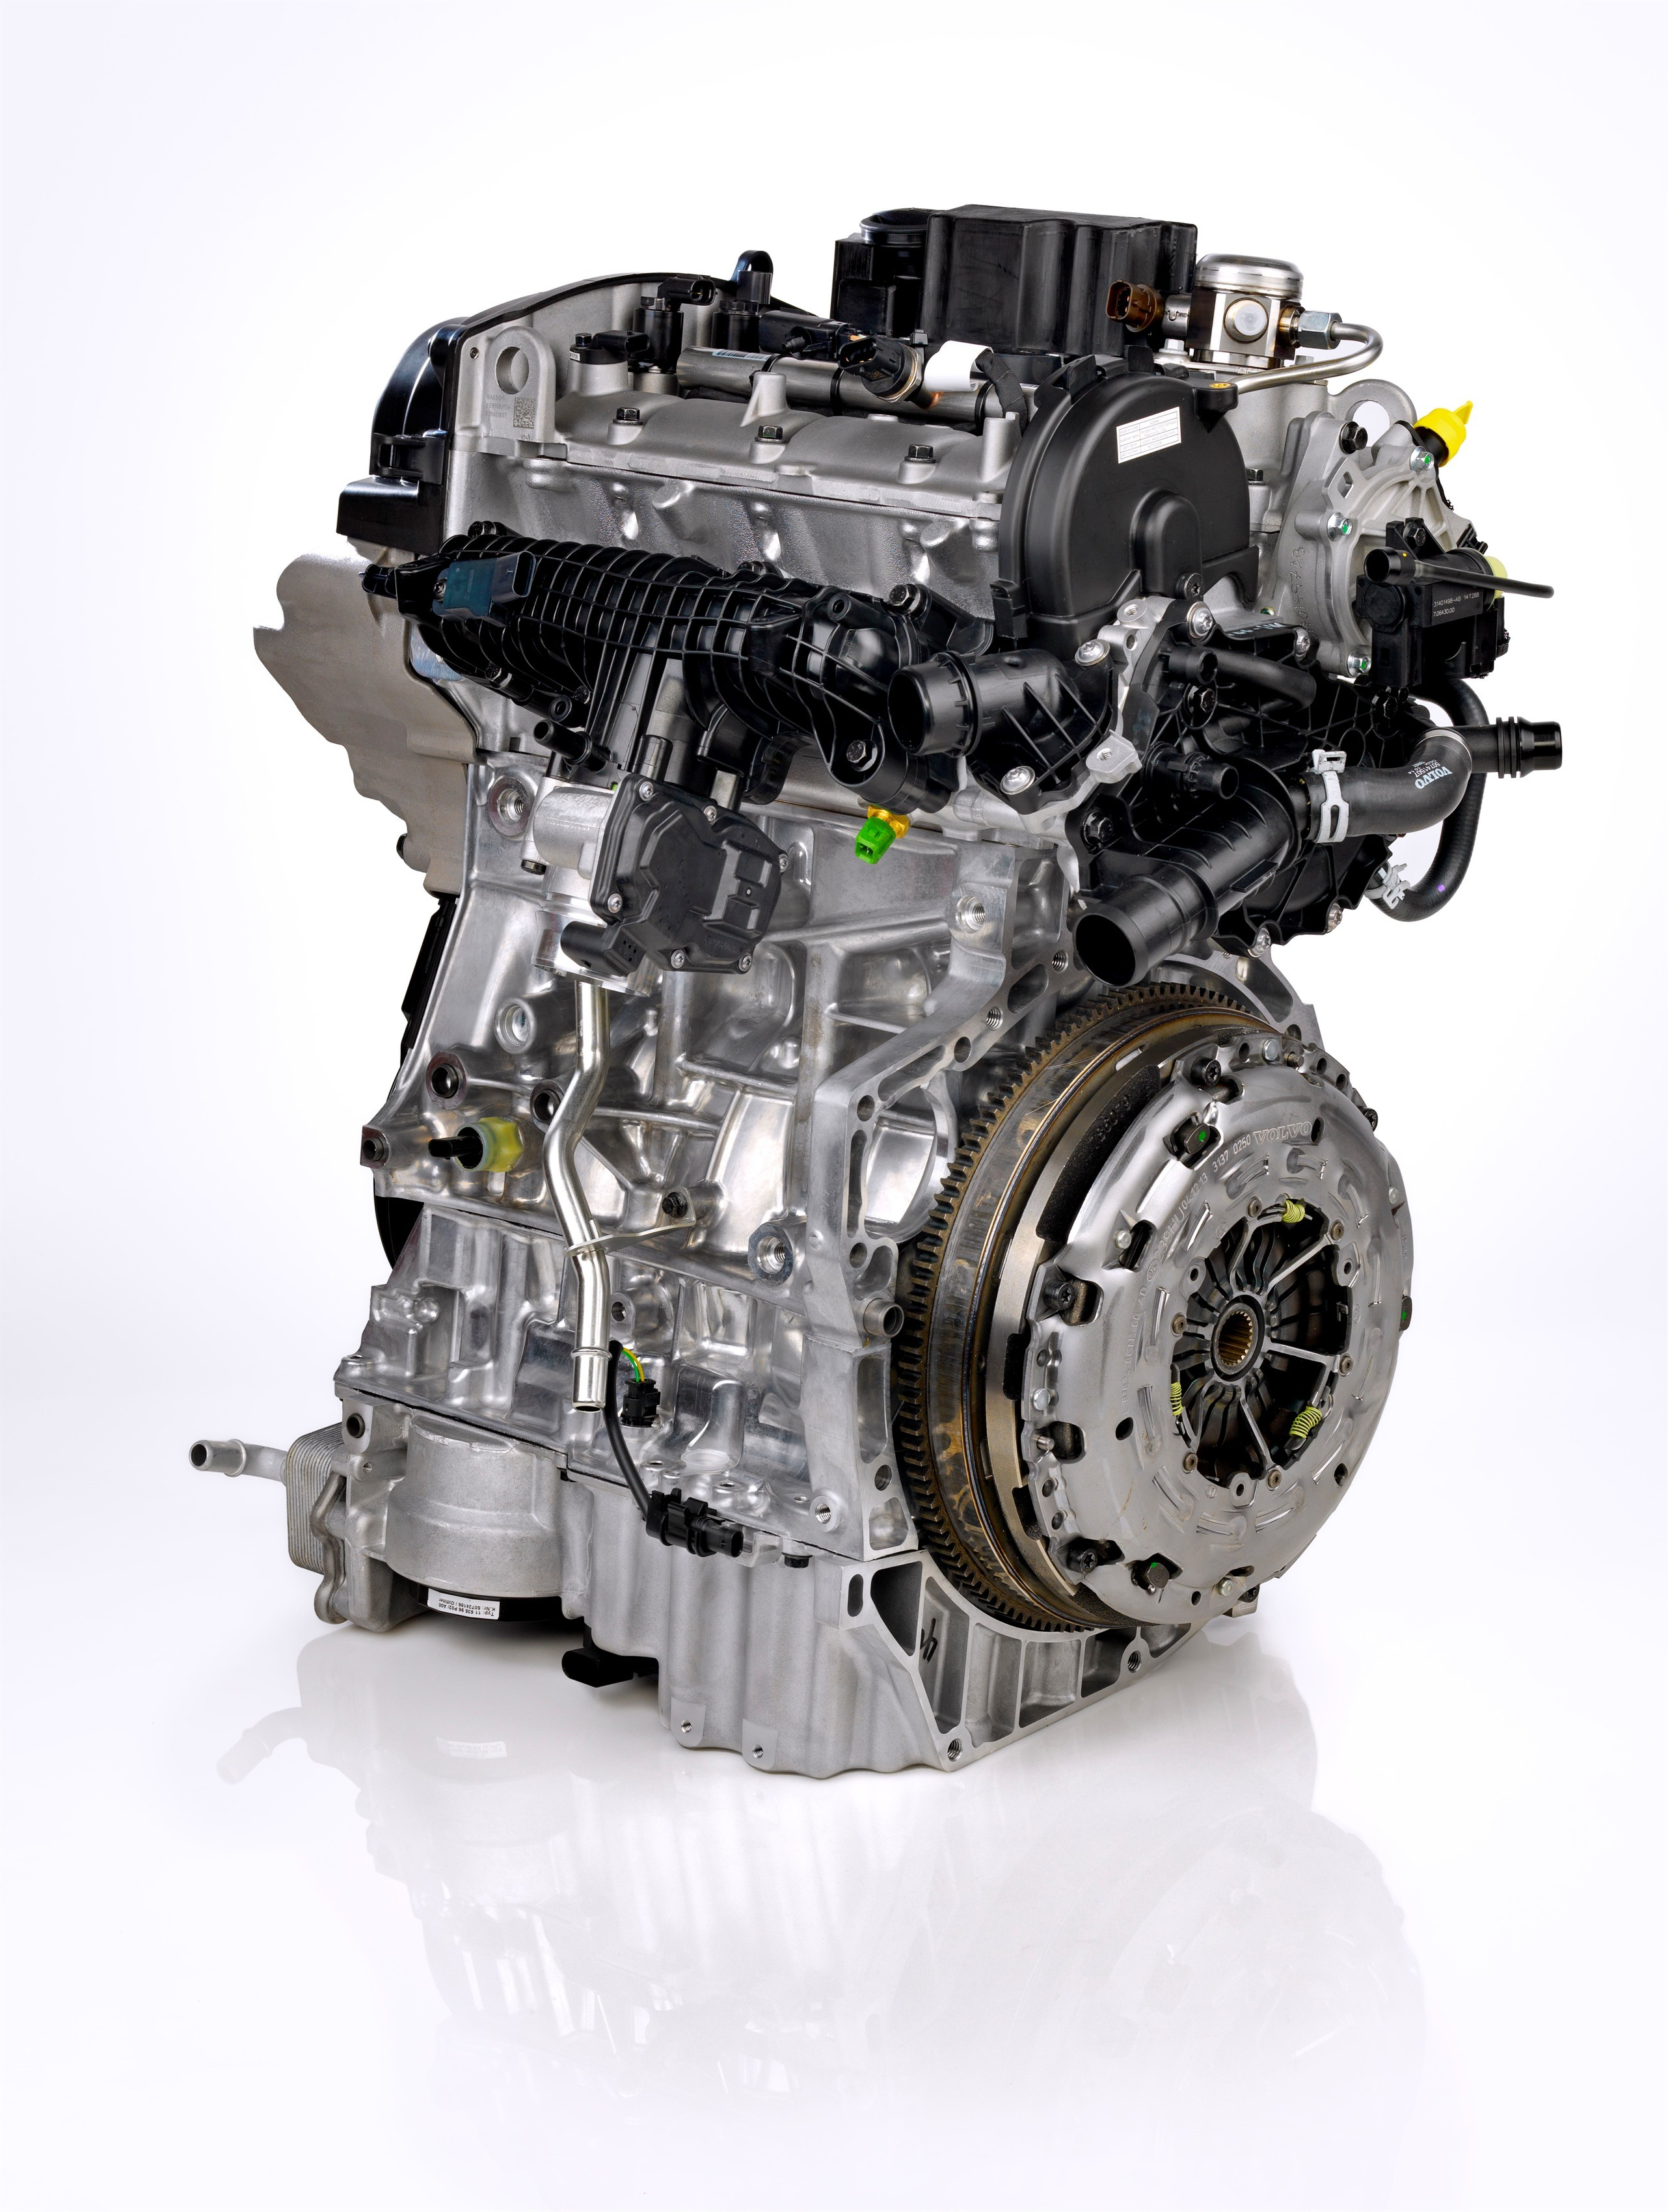 Volvo 1.5 Drive-E 3-Cylinder Teased, to Produce Up To 180 HP on CMA Platform Cars - autoevolution